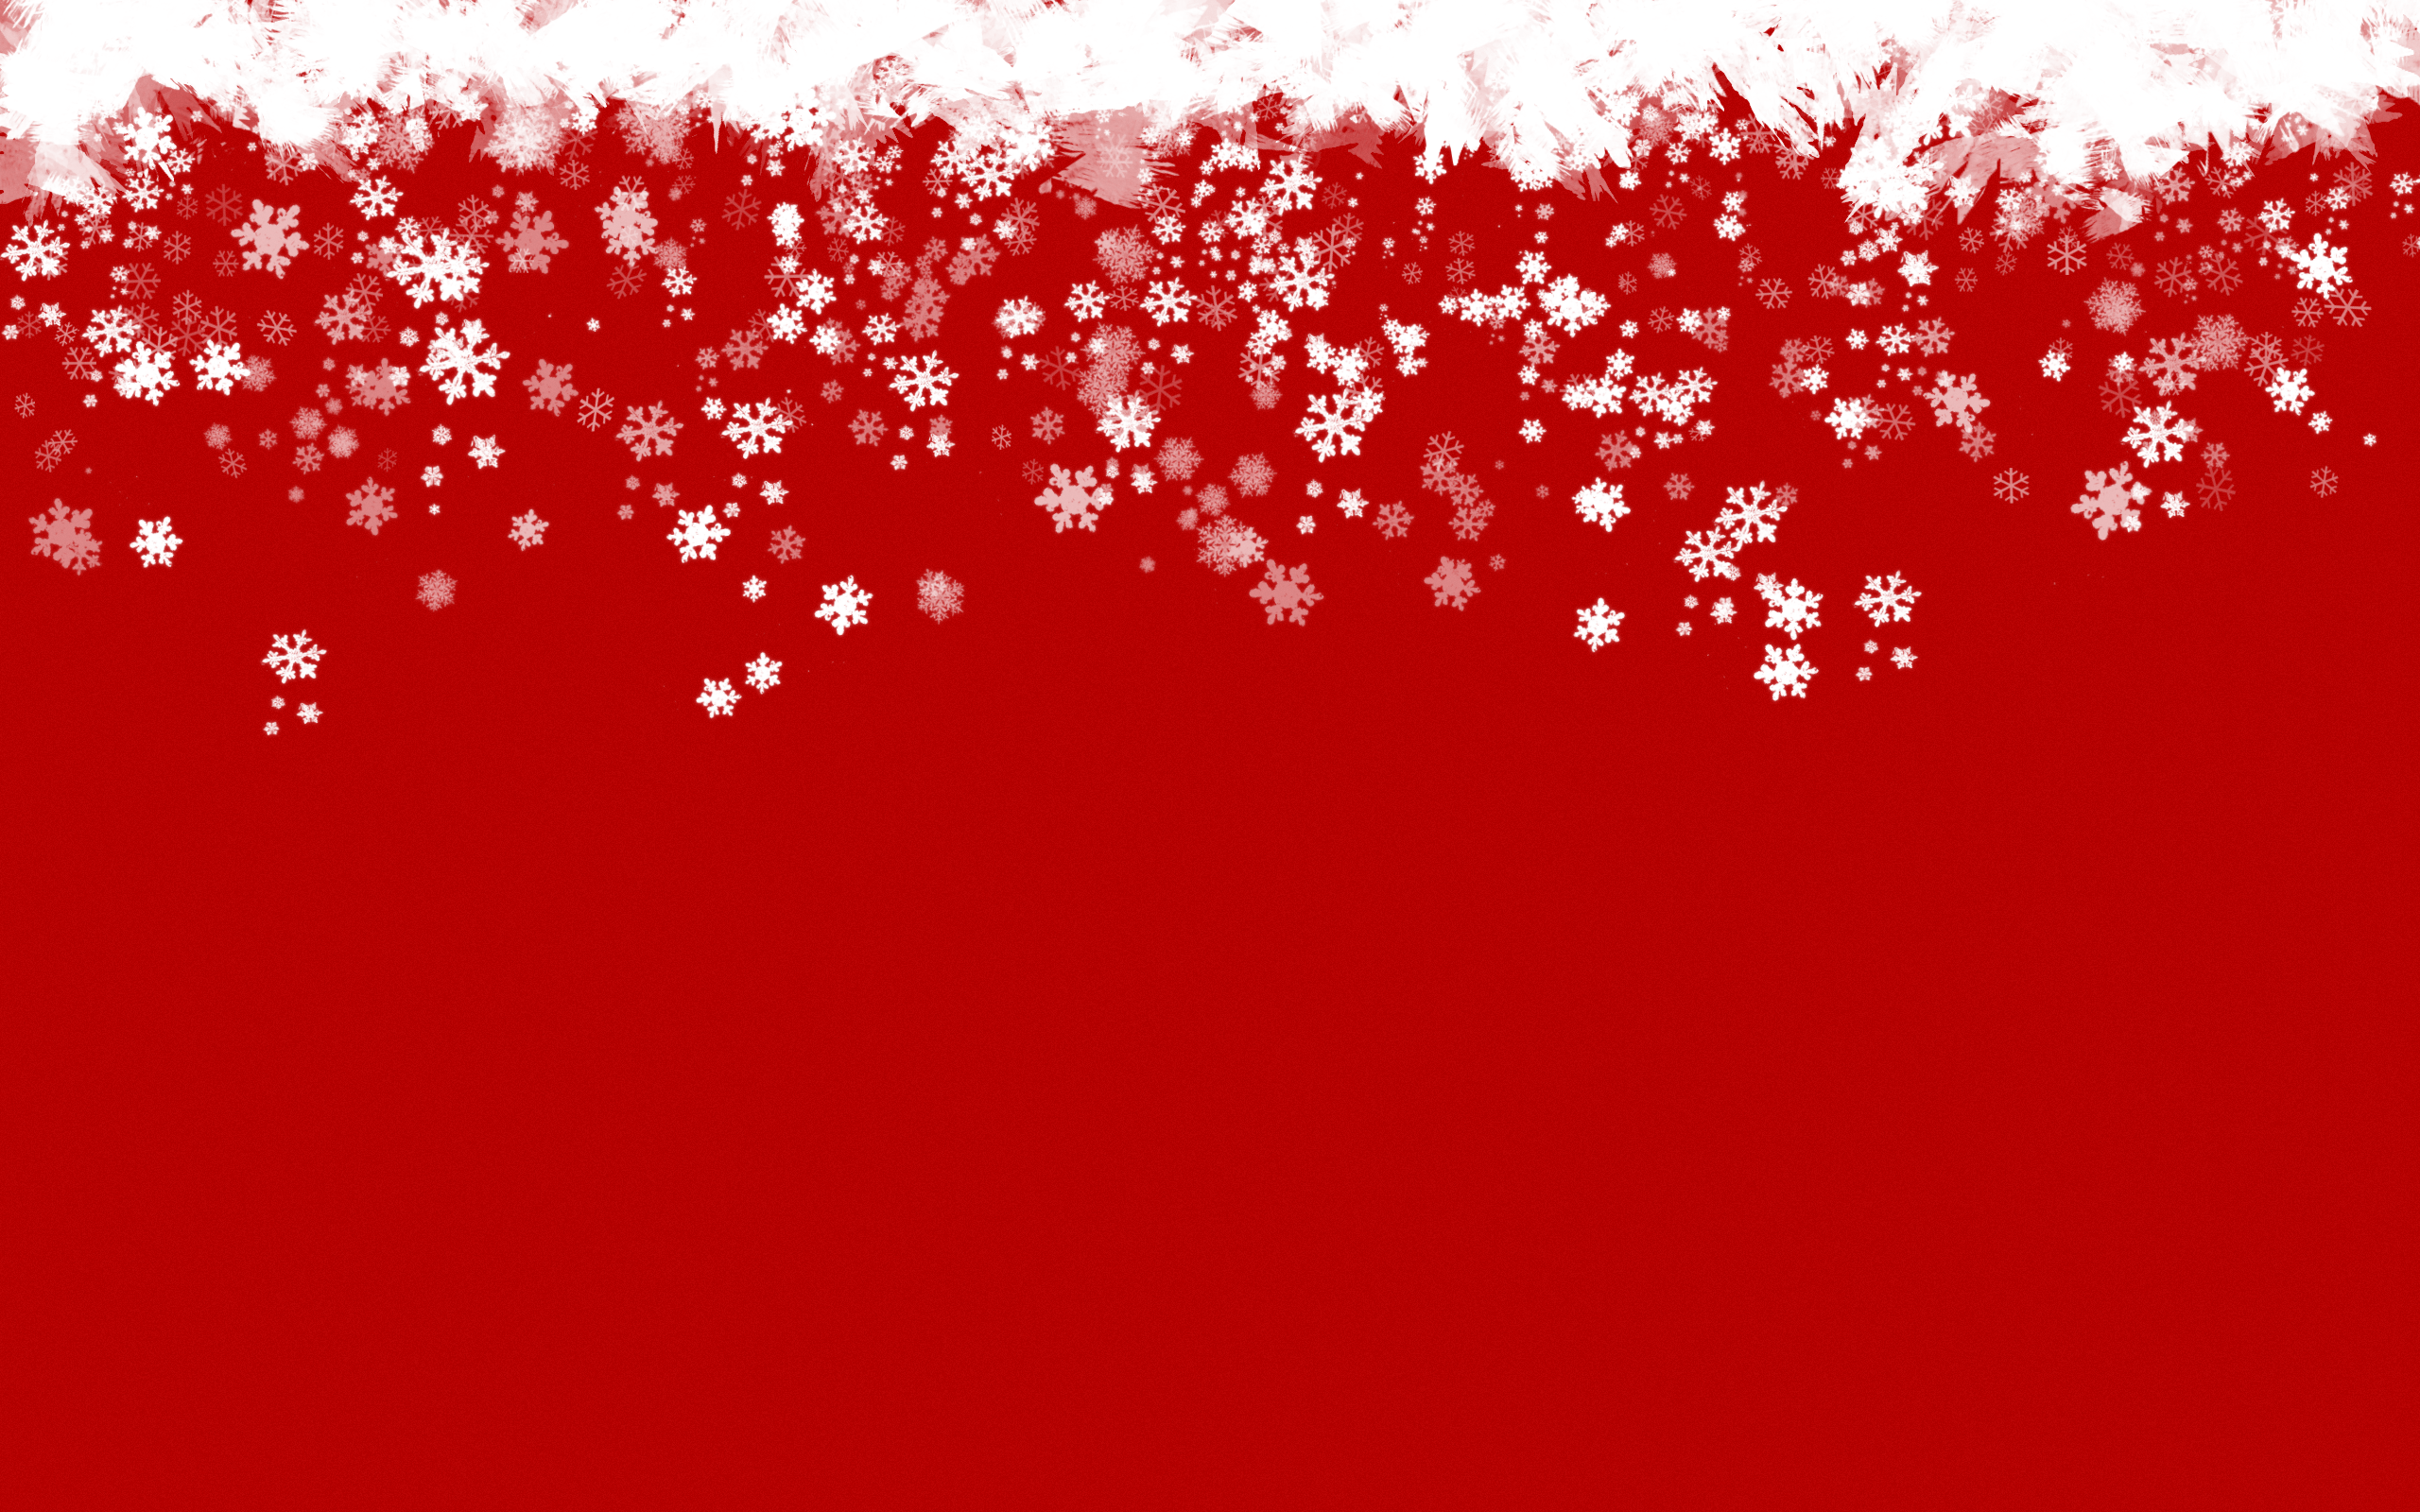 Red Christmas Wallpaper Christmas Wallpaper Backgrounds Red Glitter Wallpaper Christmas Wallpaper